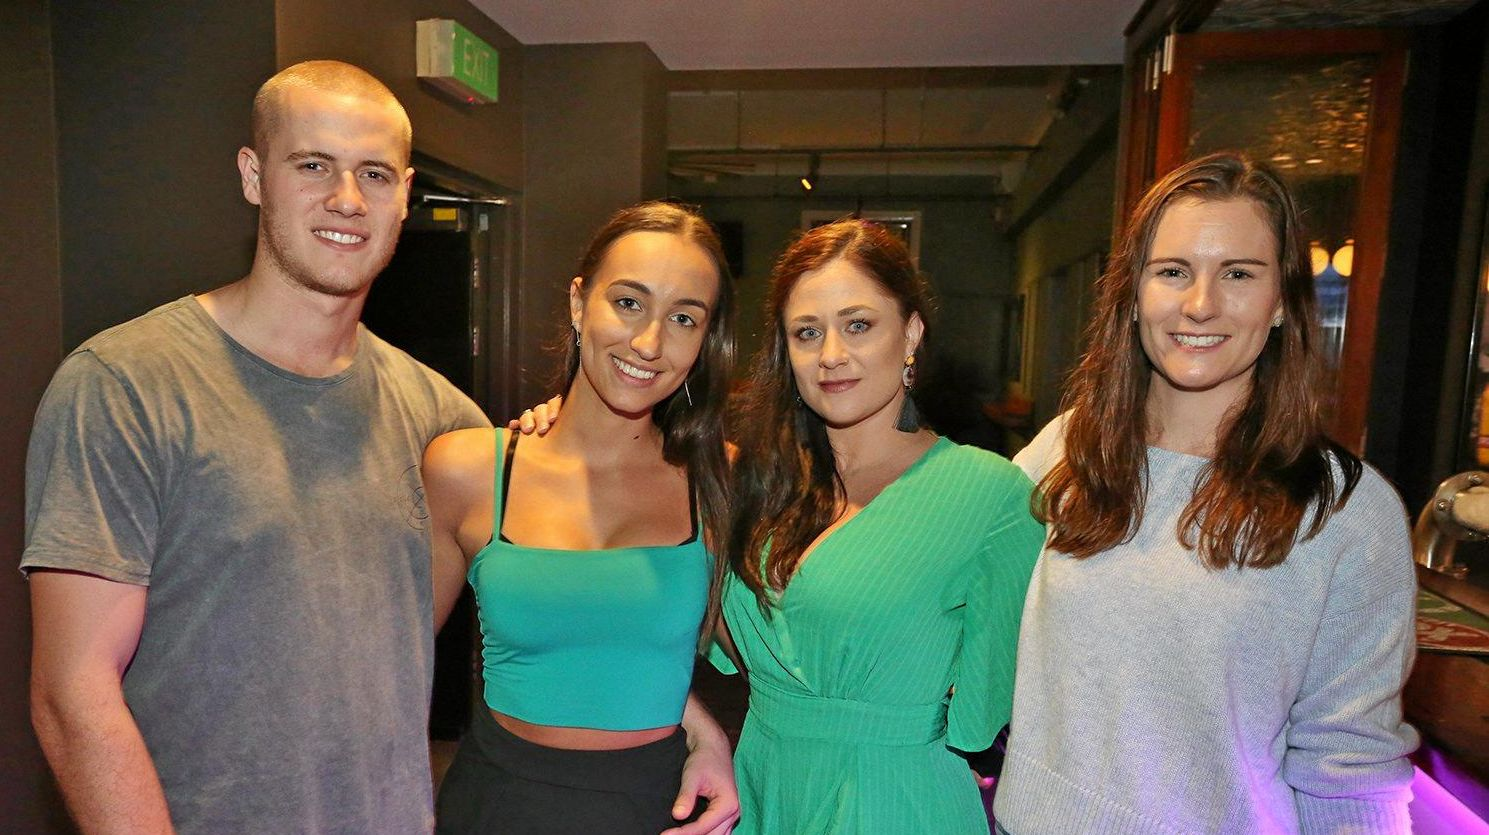 L-R Braden Fielding, Nikki White, Leah Bray and Tricia Krienke at The Heritage Hotel.